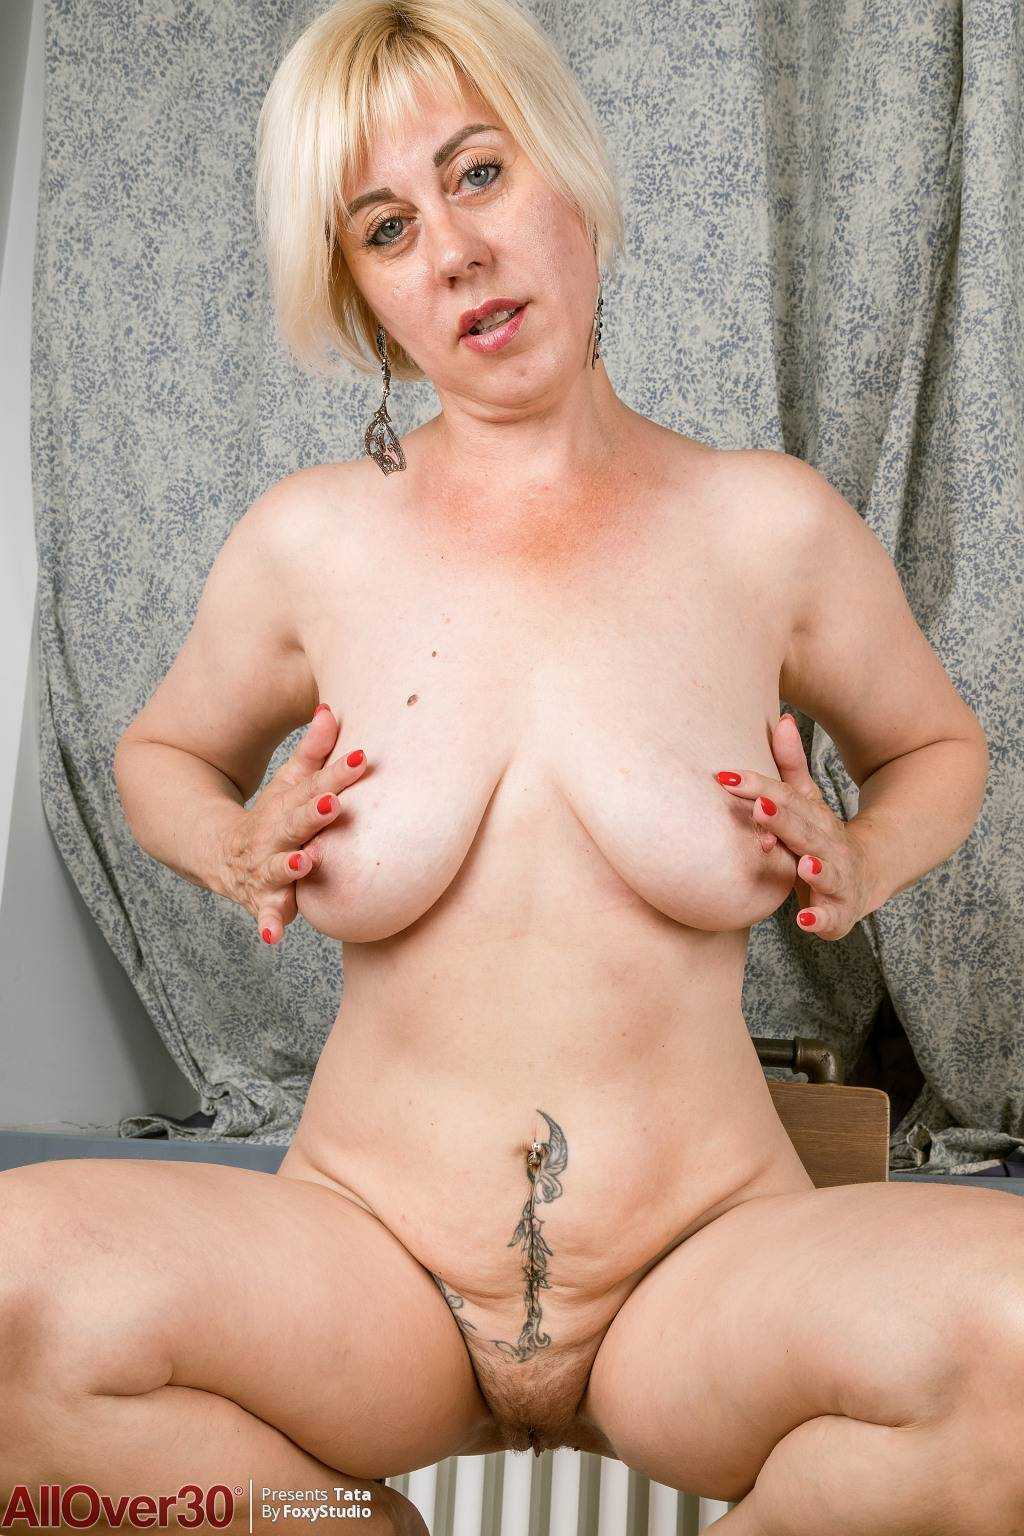 Blonde mature Tata playing with her unshaved pussy at AllOver30